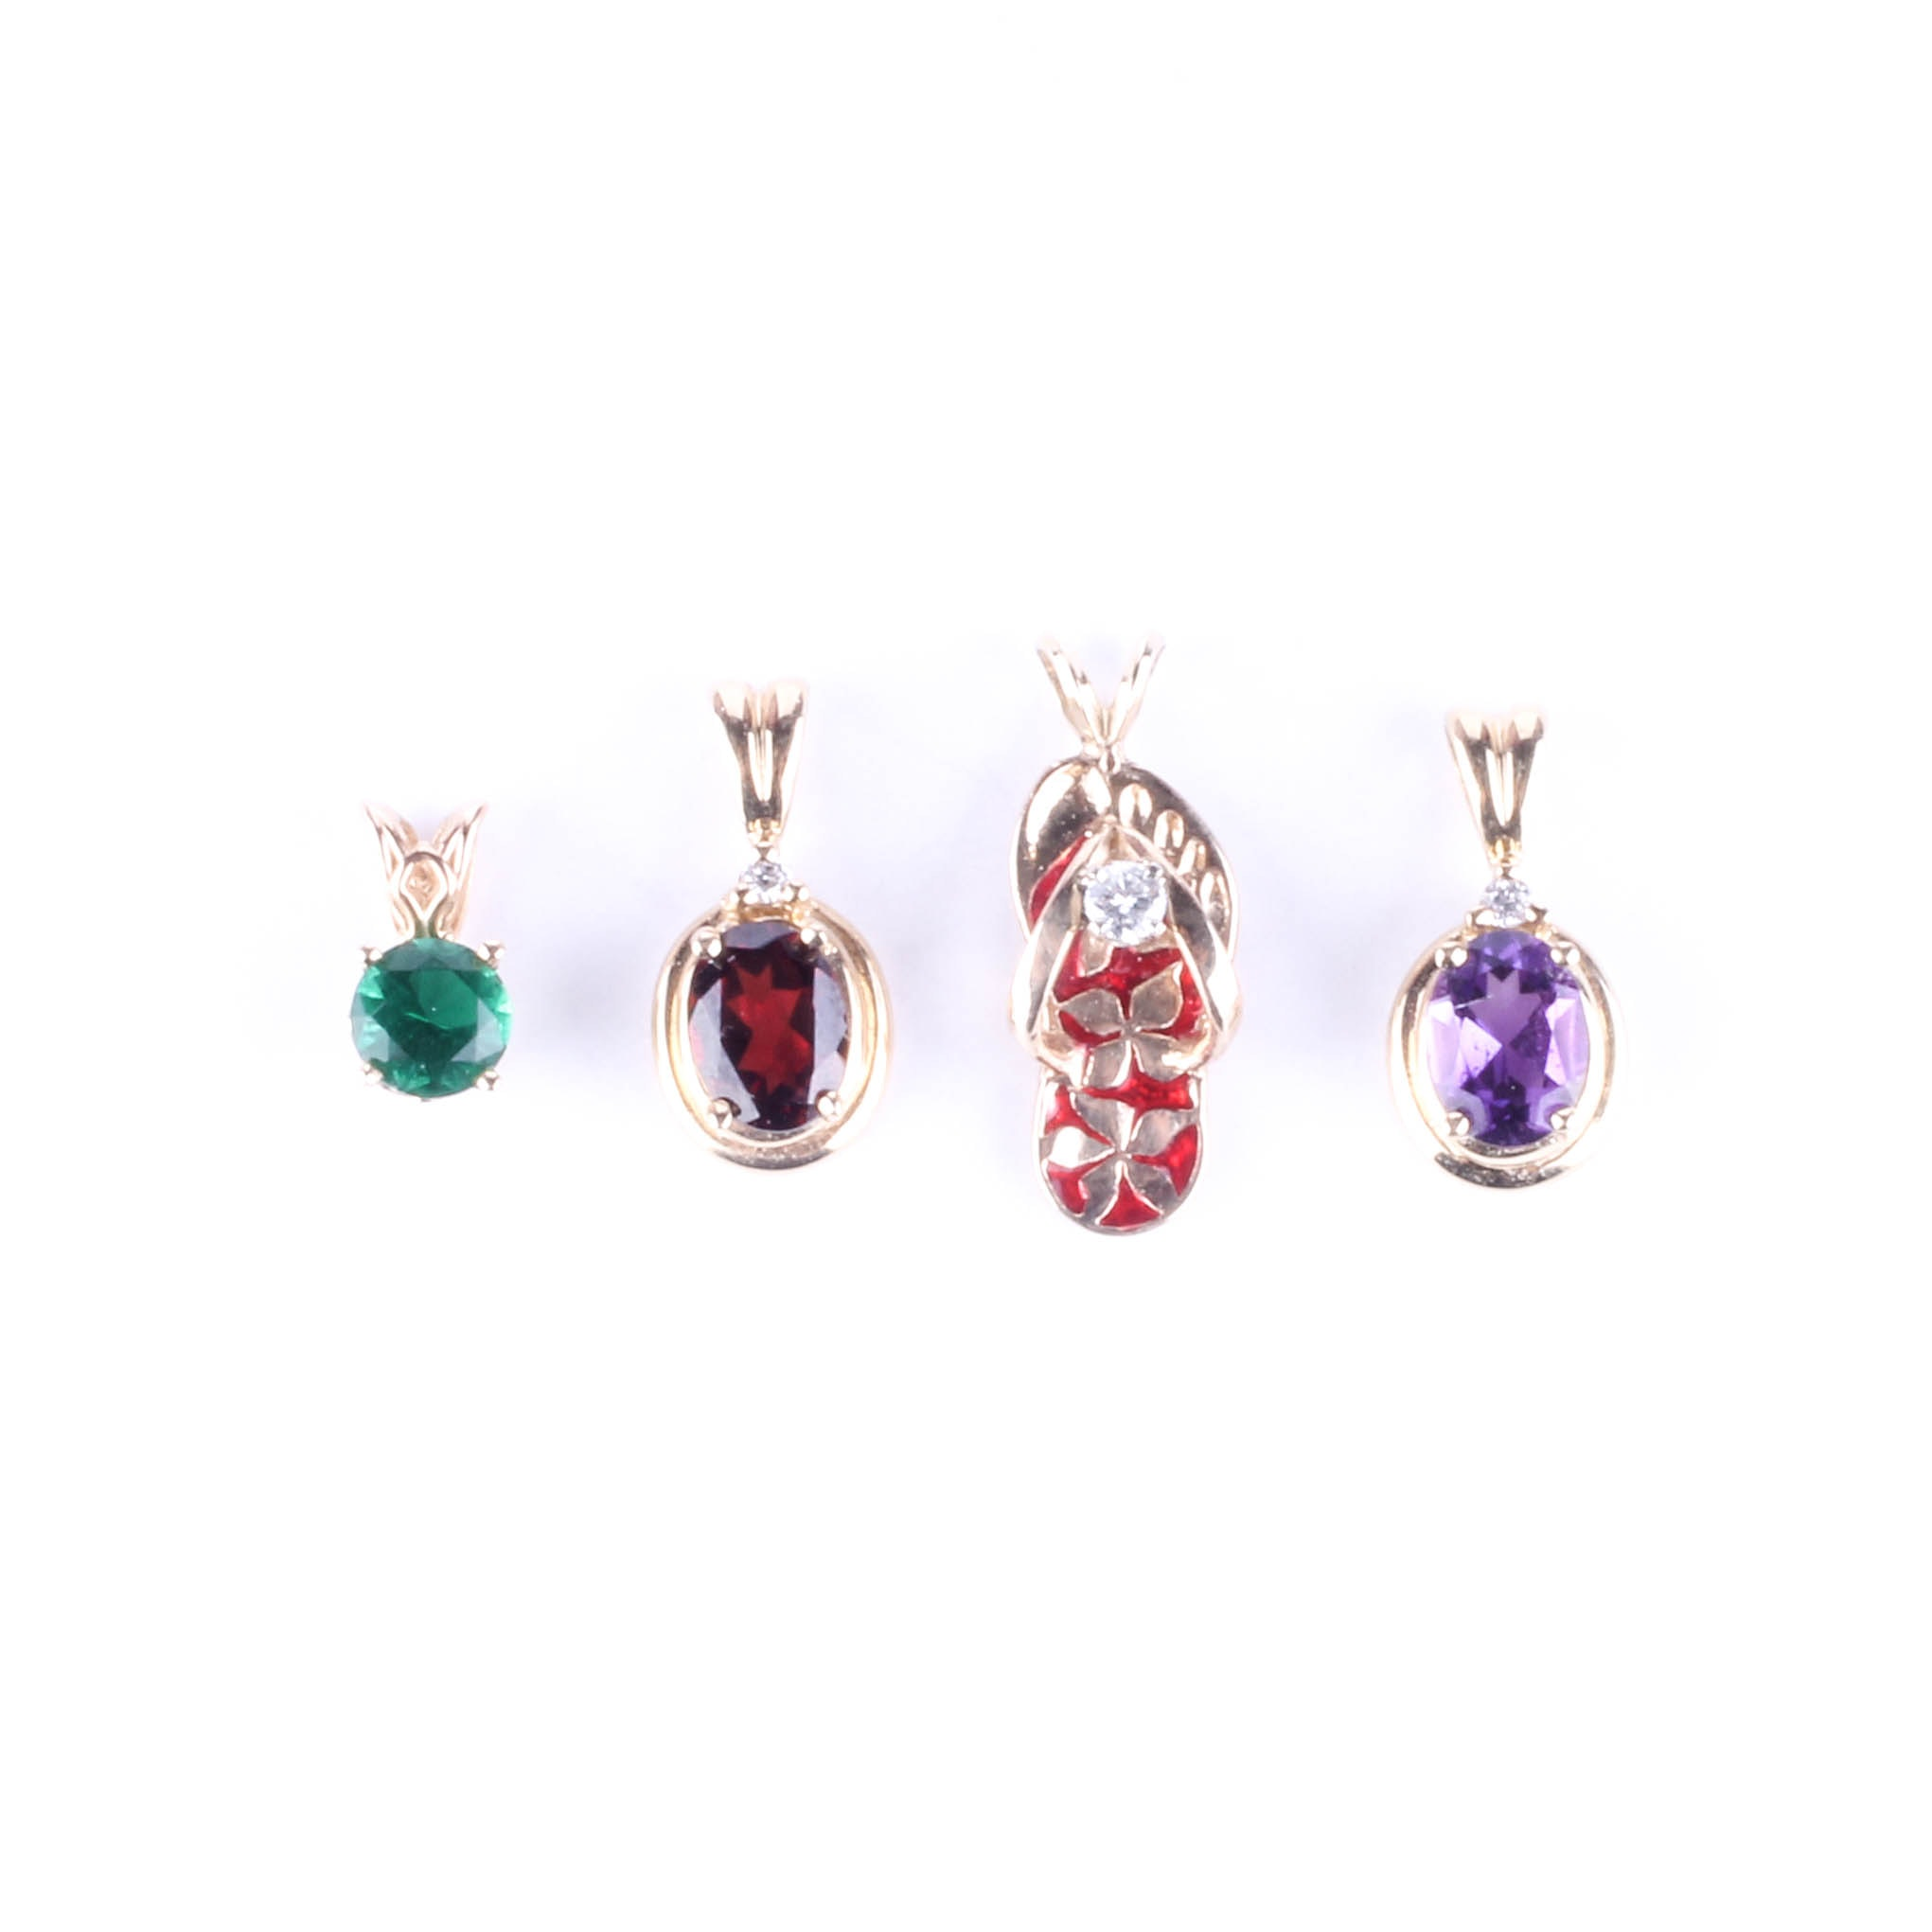 14K Gold and Gemstone Pendant Collection